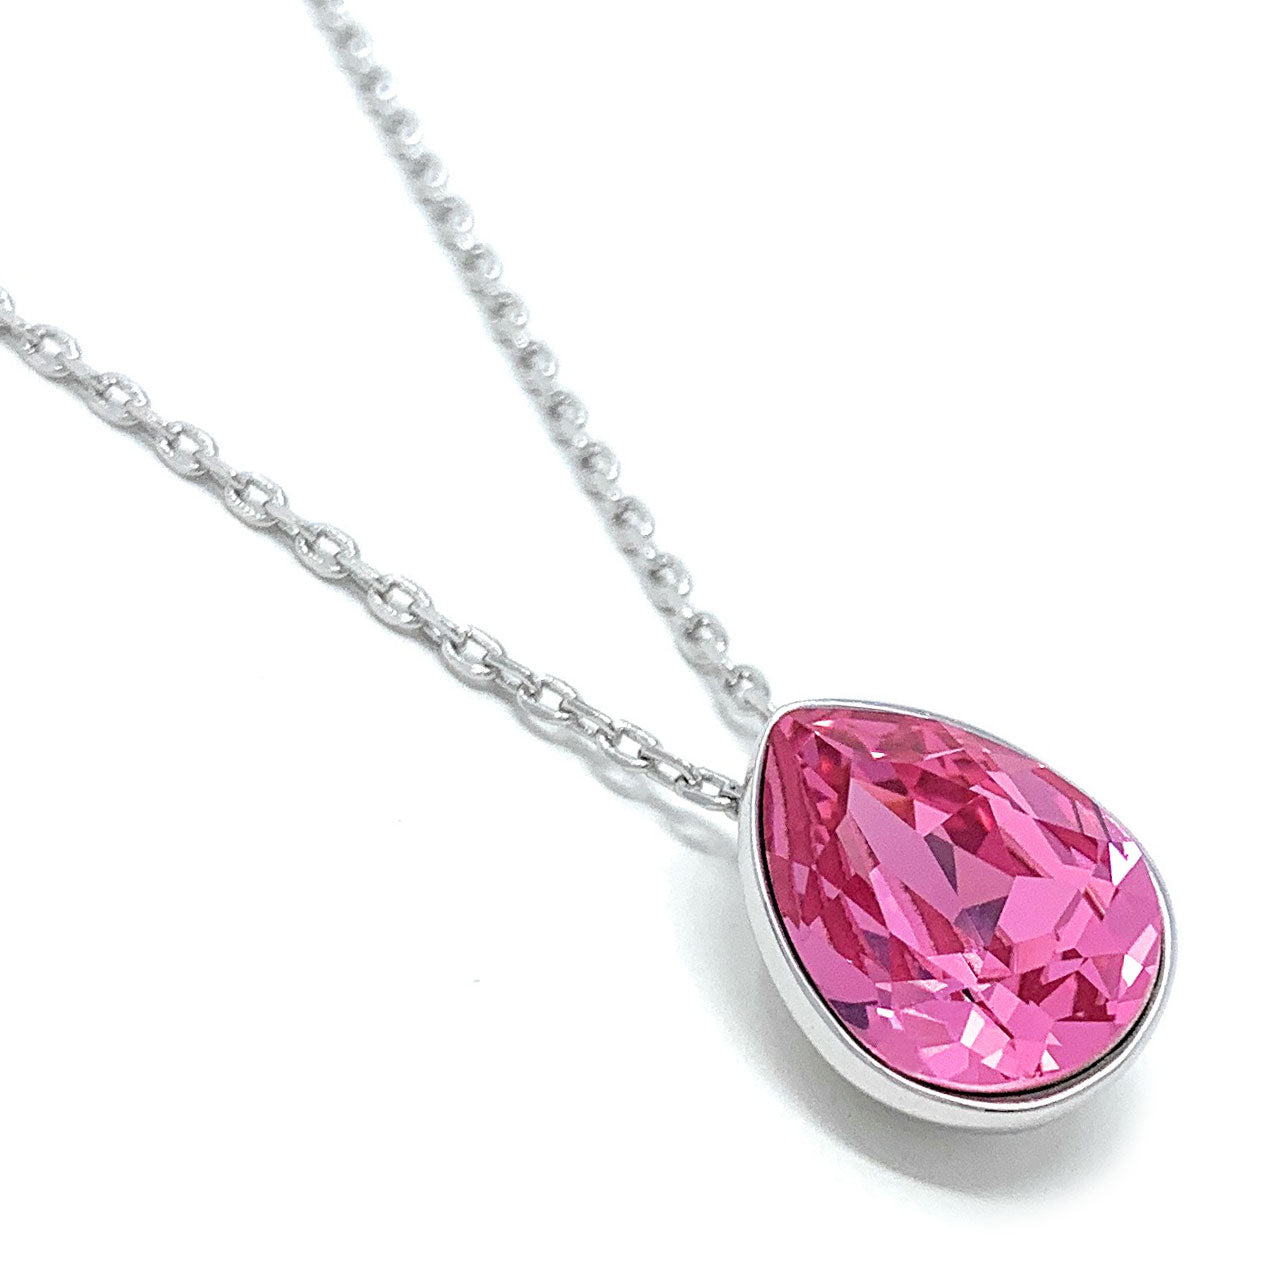 Mary Pendant Necklace with Pink Rose Drop Crystals from Swarovski Silver Toned Rhodium Plated - Ed Heart